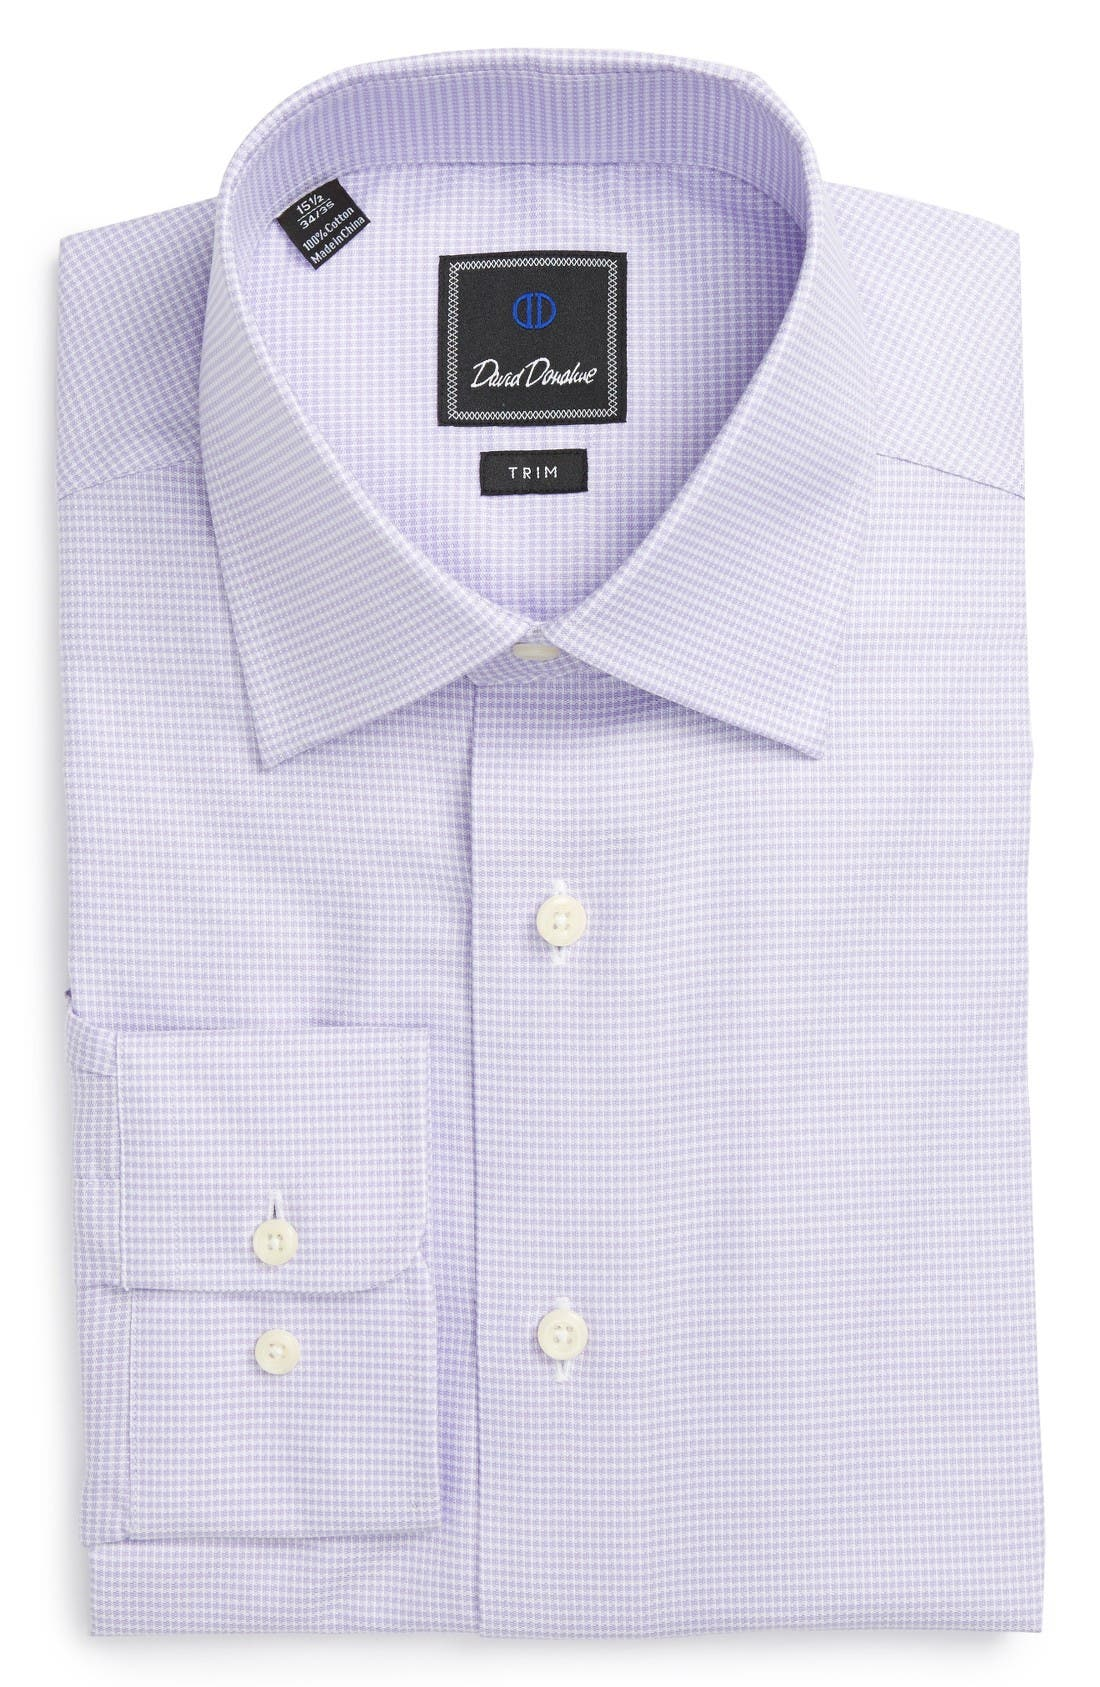 DAVID DONAHUE Trim Fit Houndstooth Dress Shirt